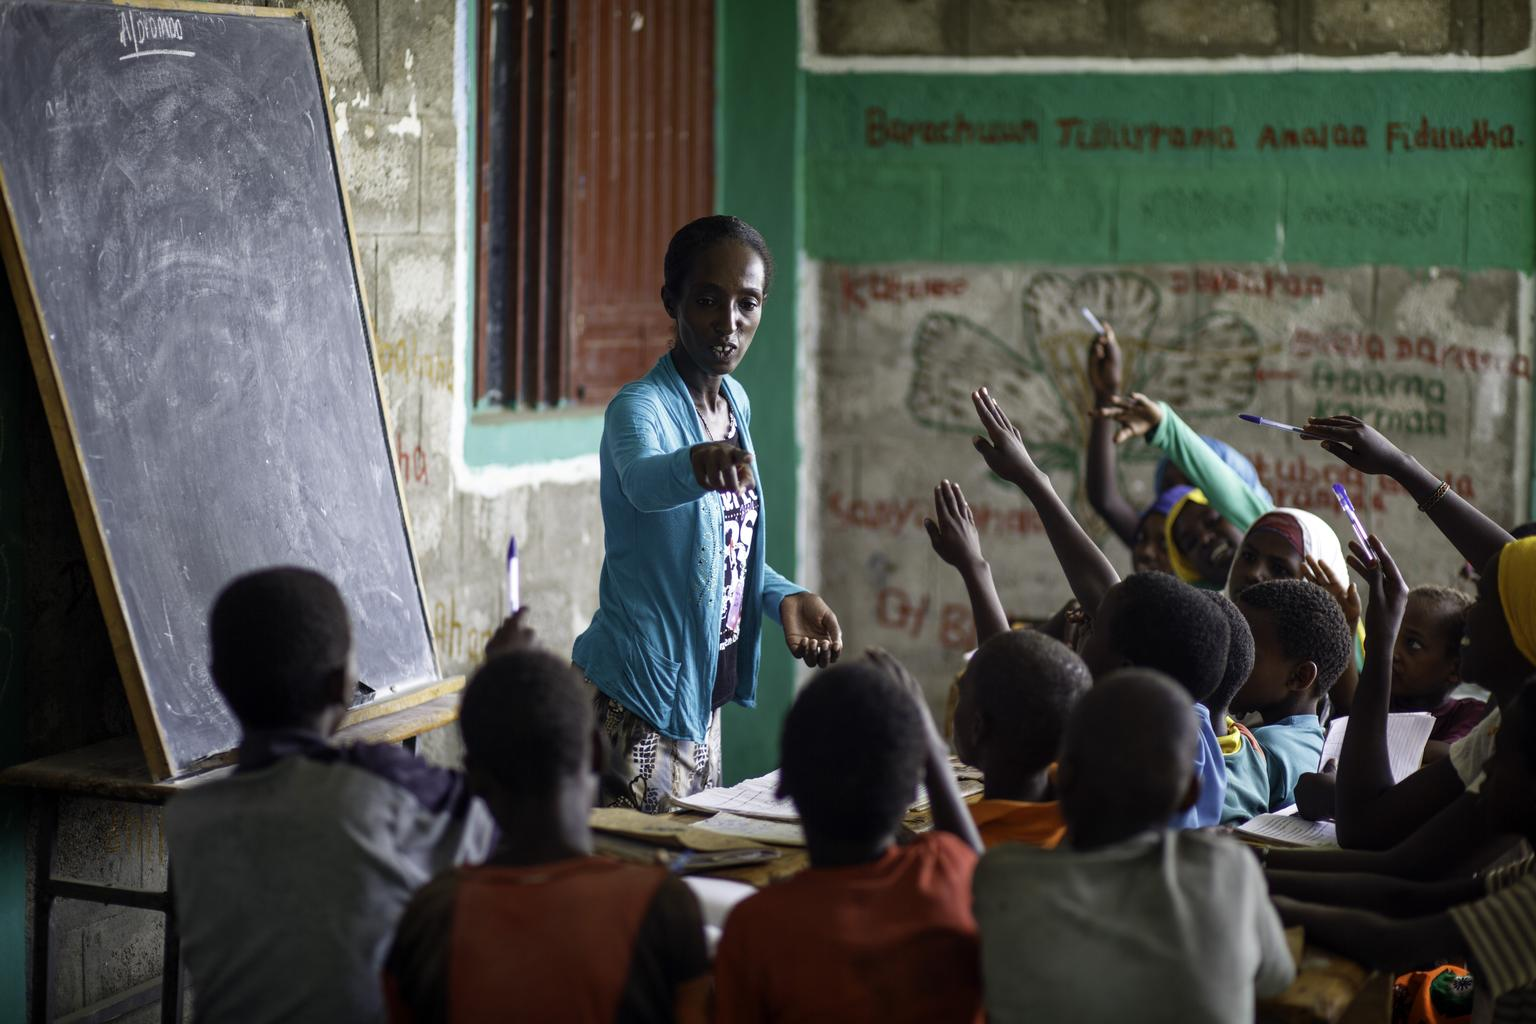 A teacher in Ethiopia conducts her class outside due to a lack of classrooms.